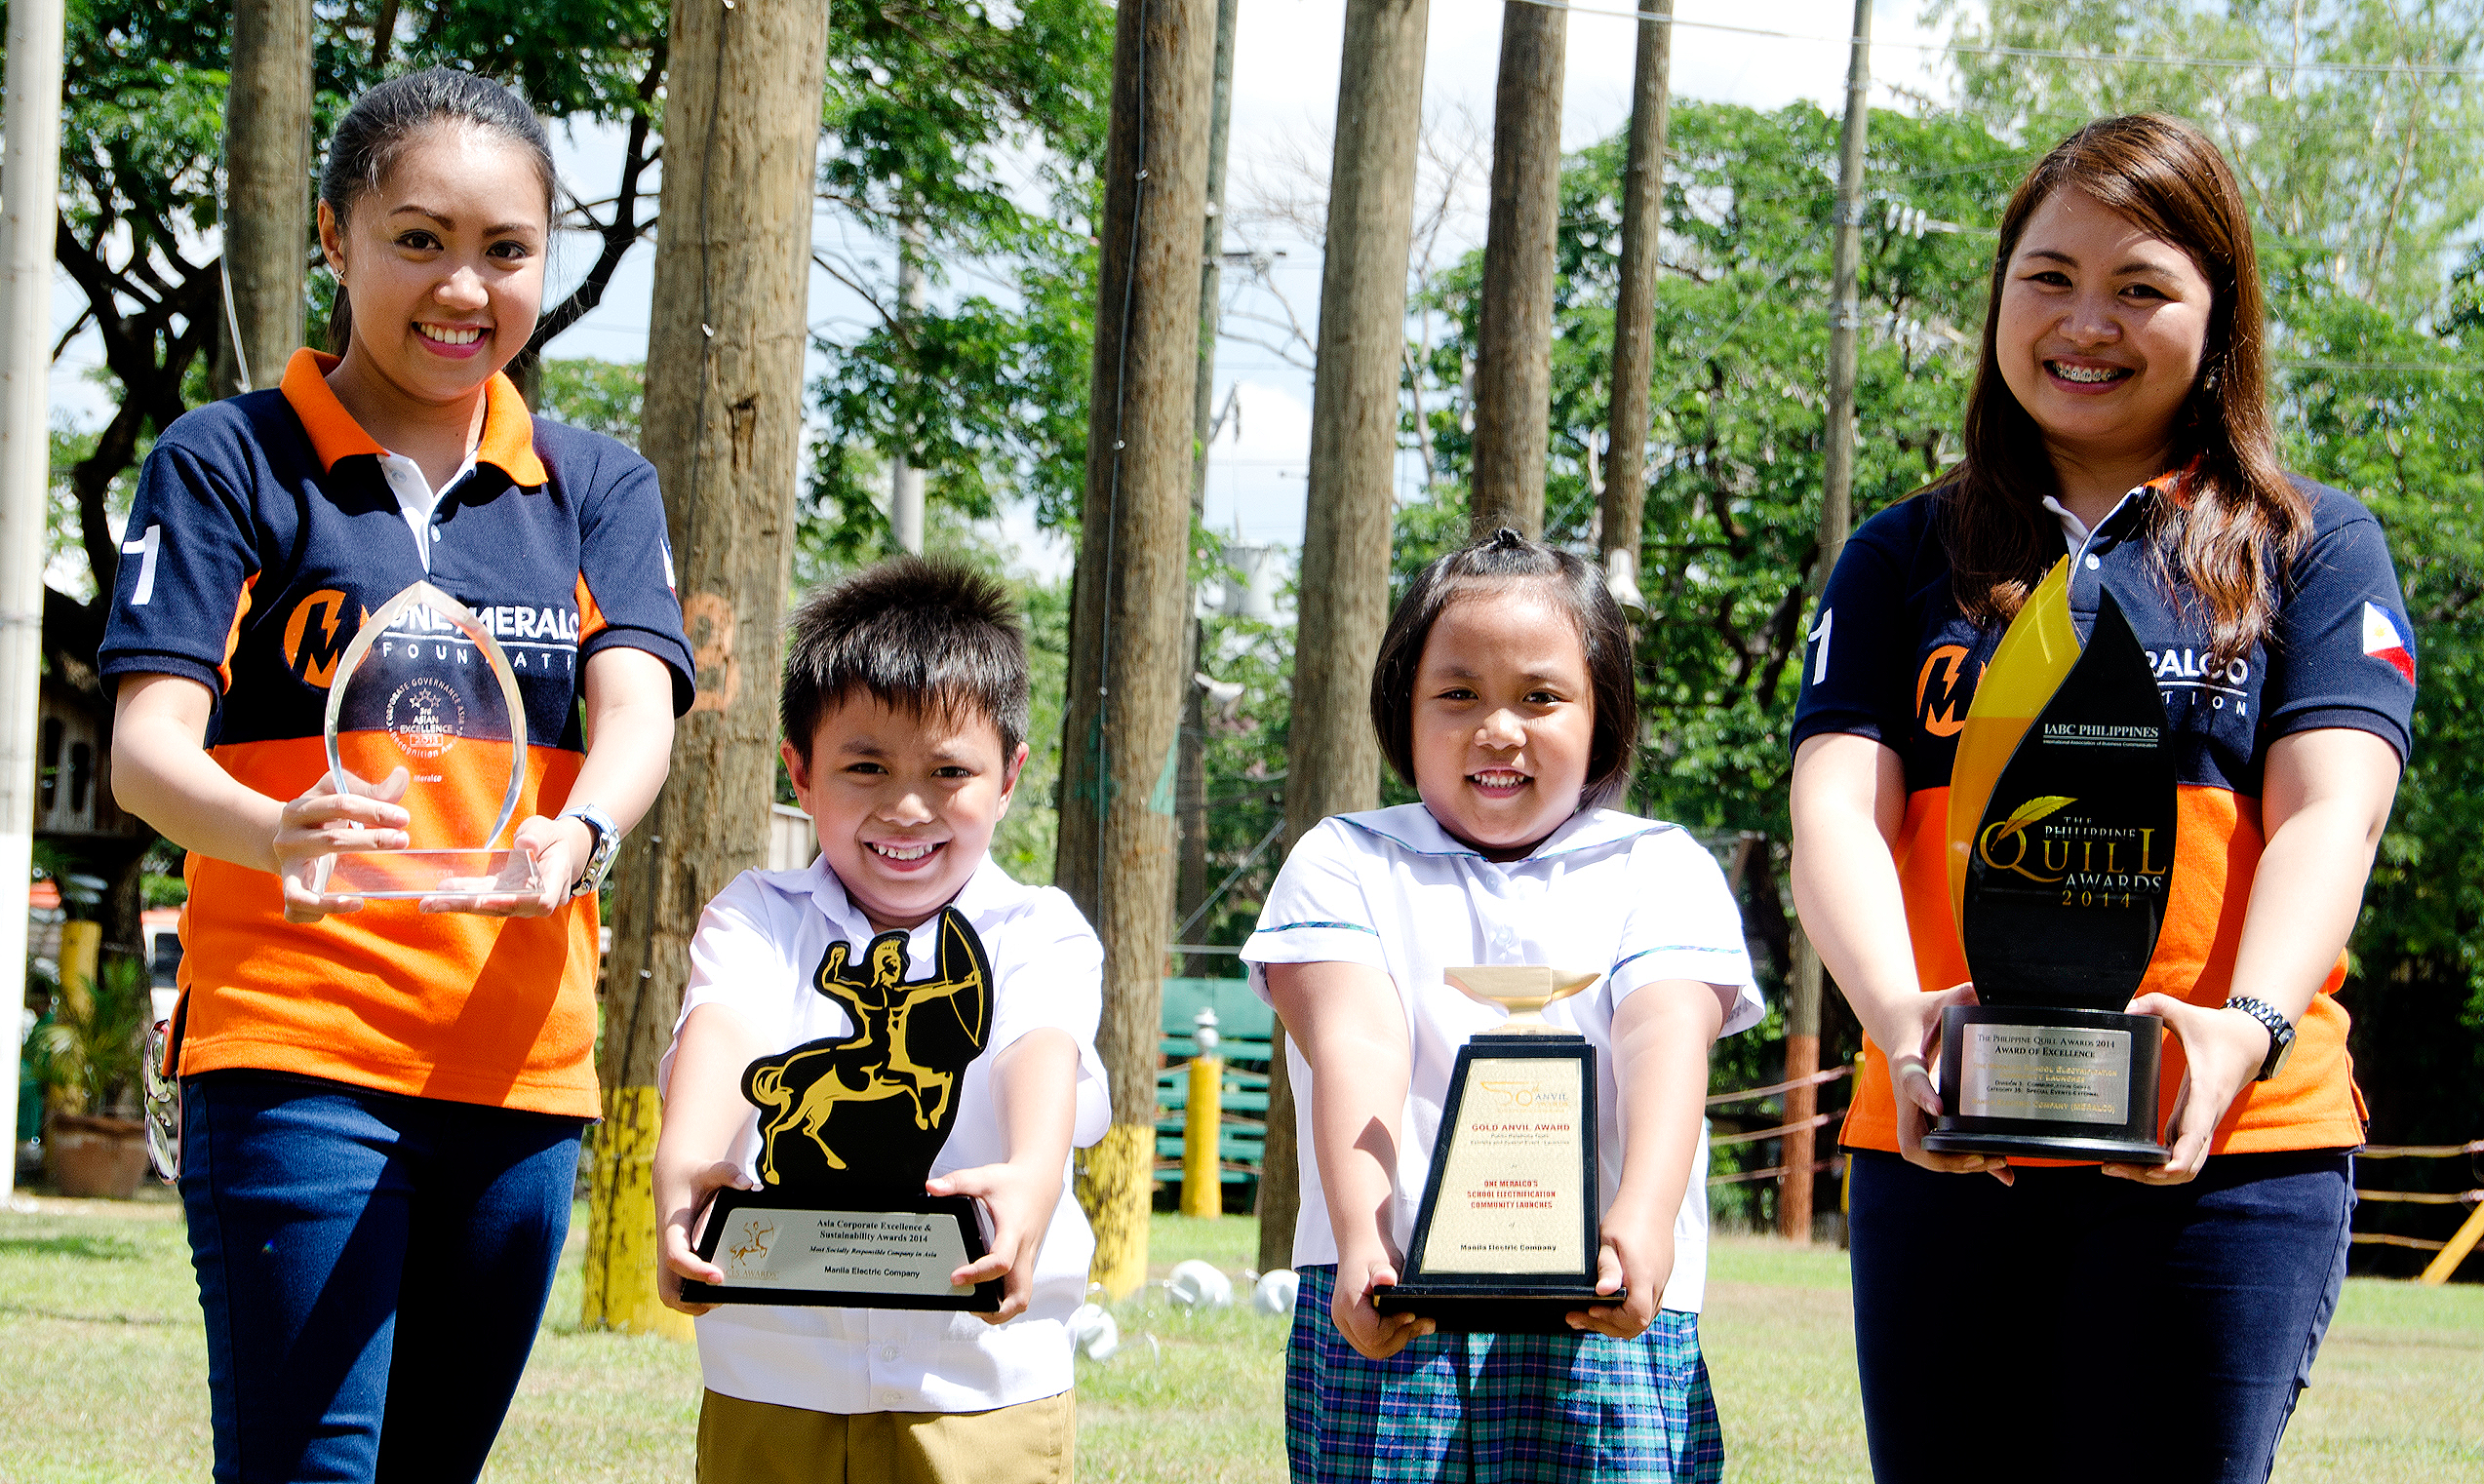 One Meralco Foundation awards